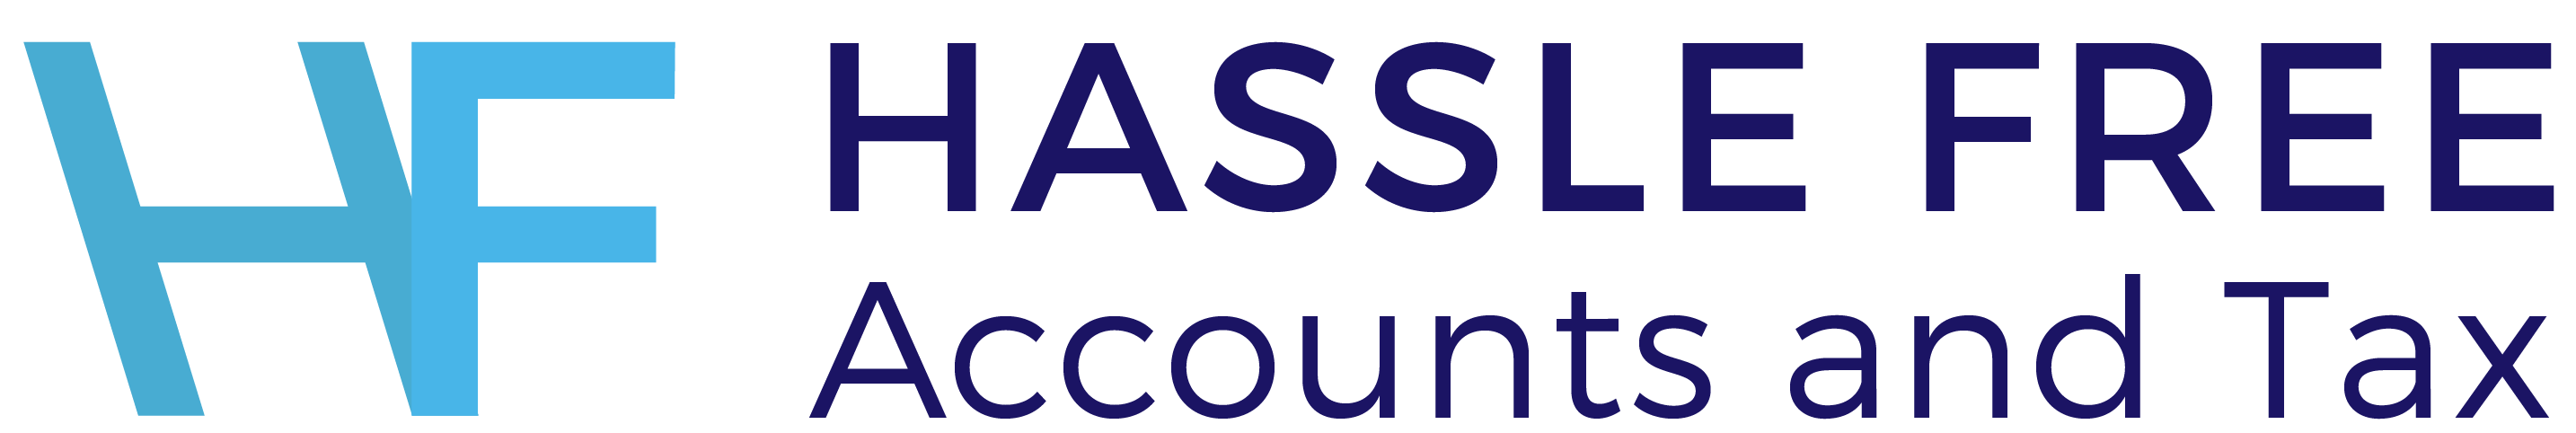 Hassle Free Accounts and Tax